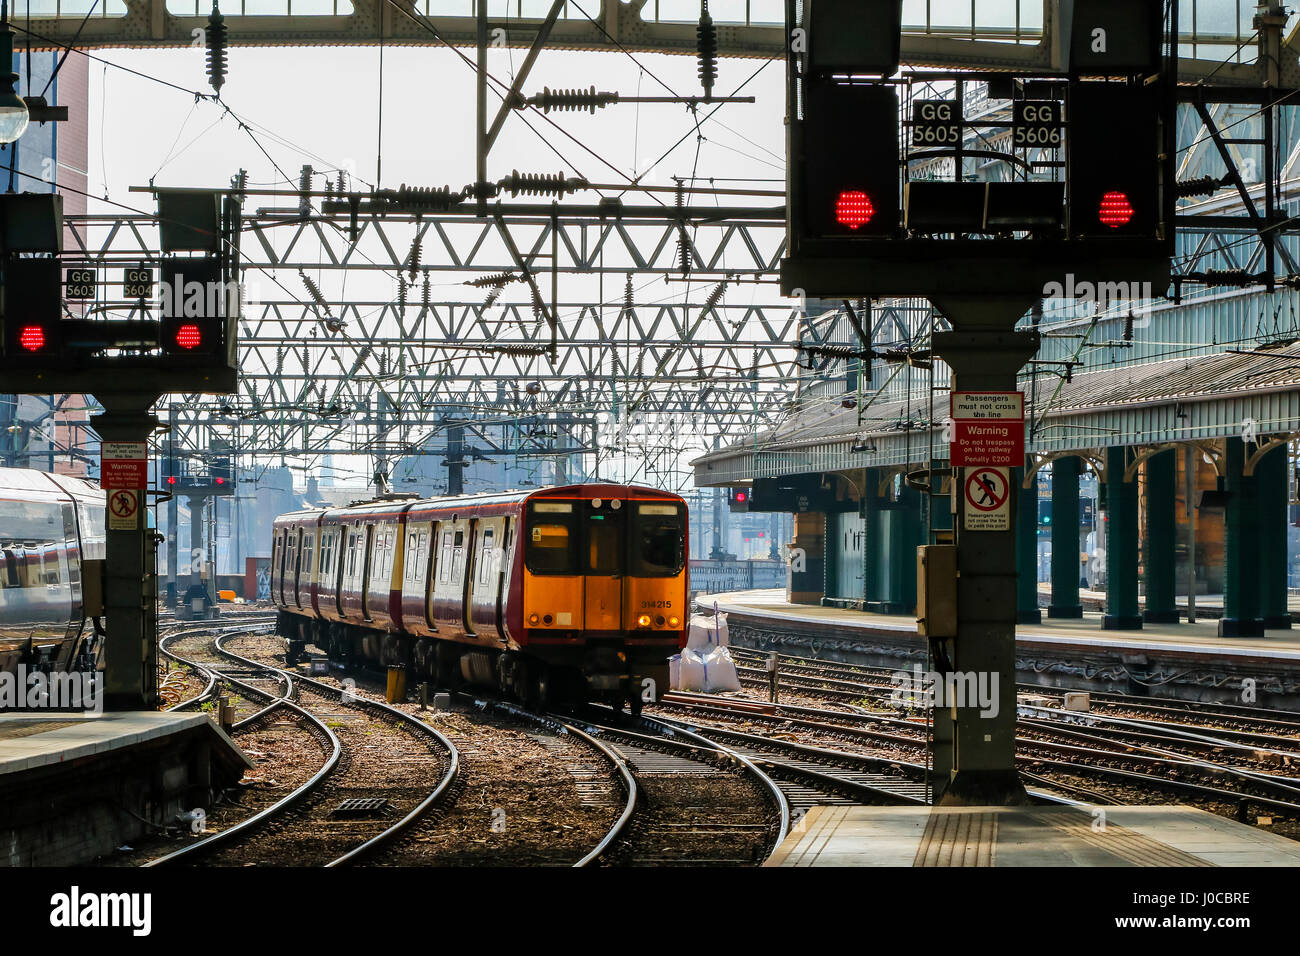 Train approaching a platform at Glasgow Central railway station, Glasgow, Scotland, UK - Stock Image